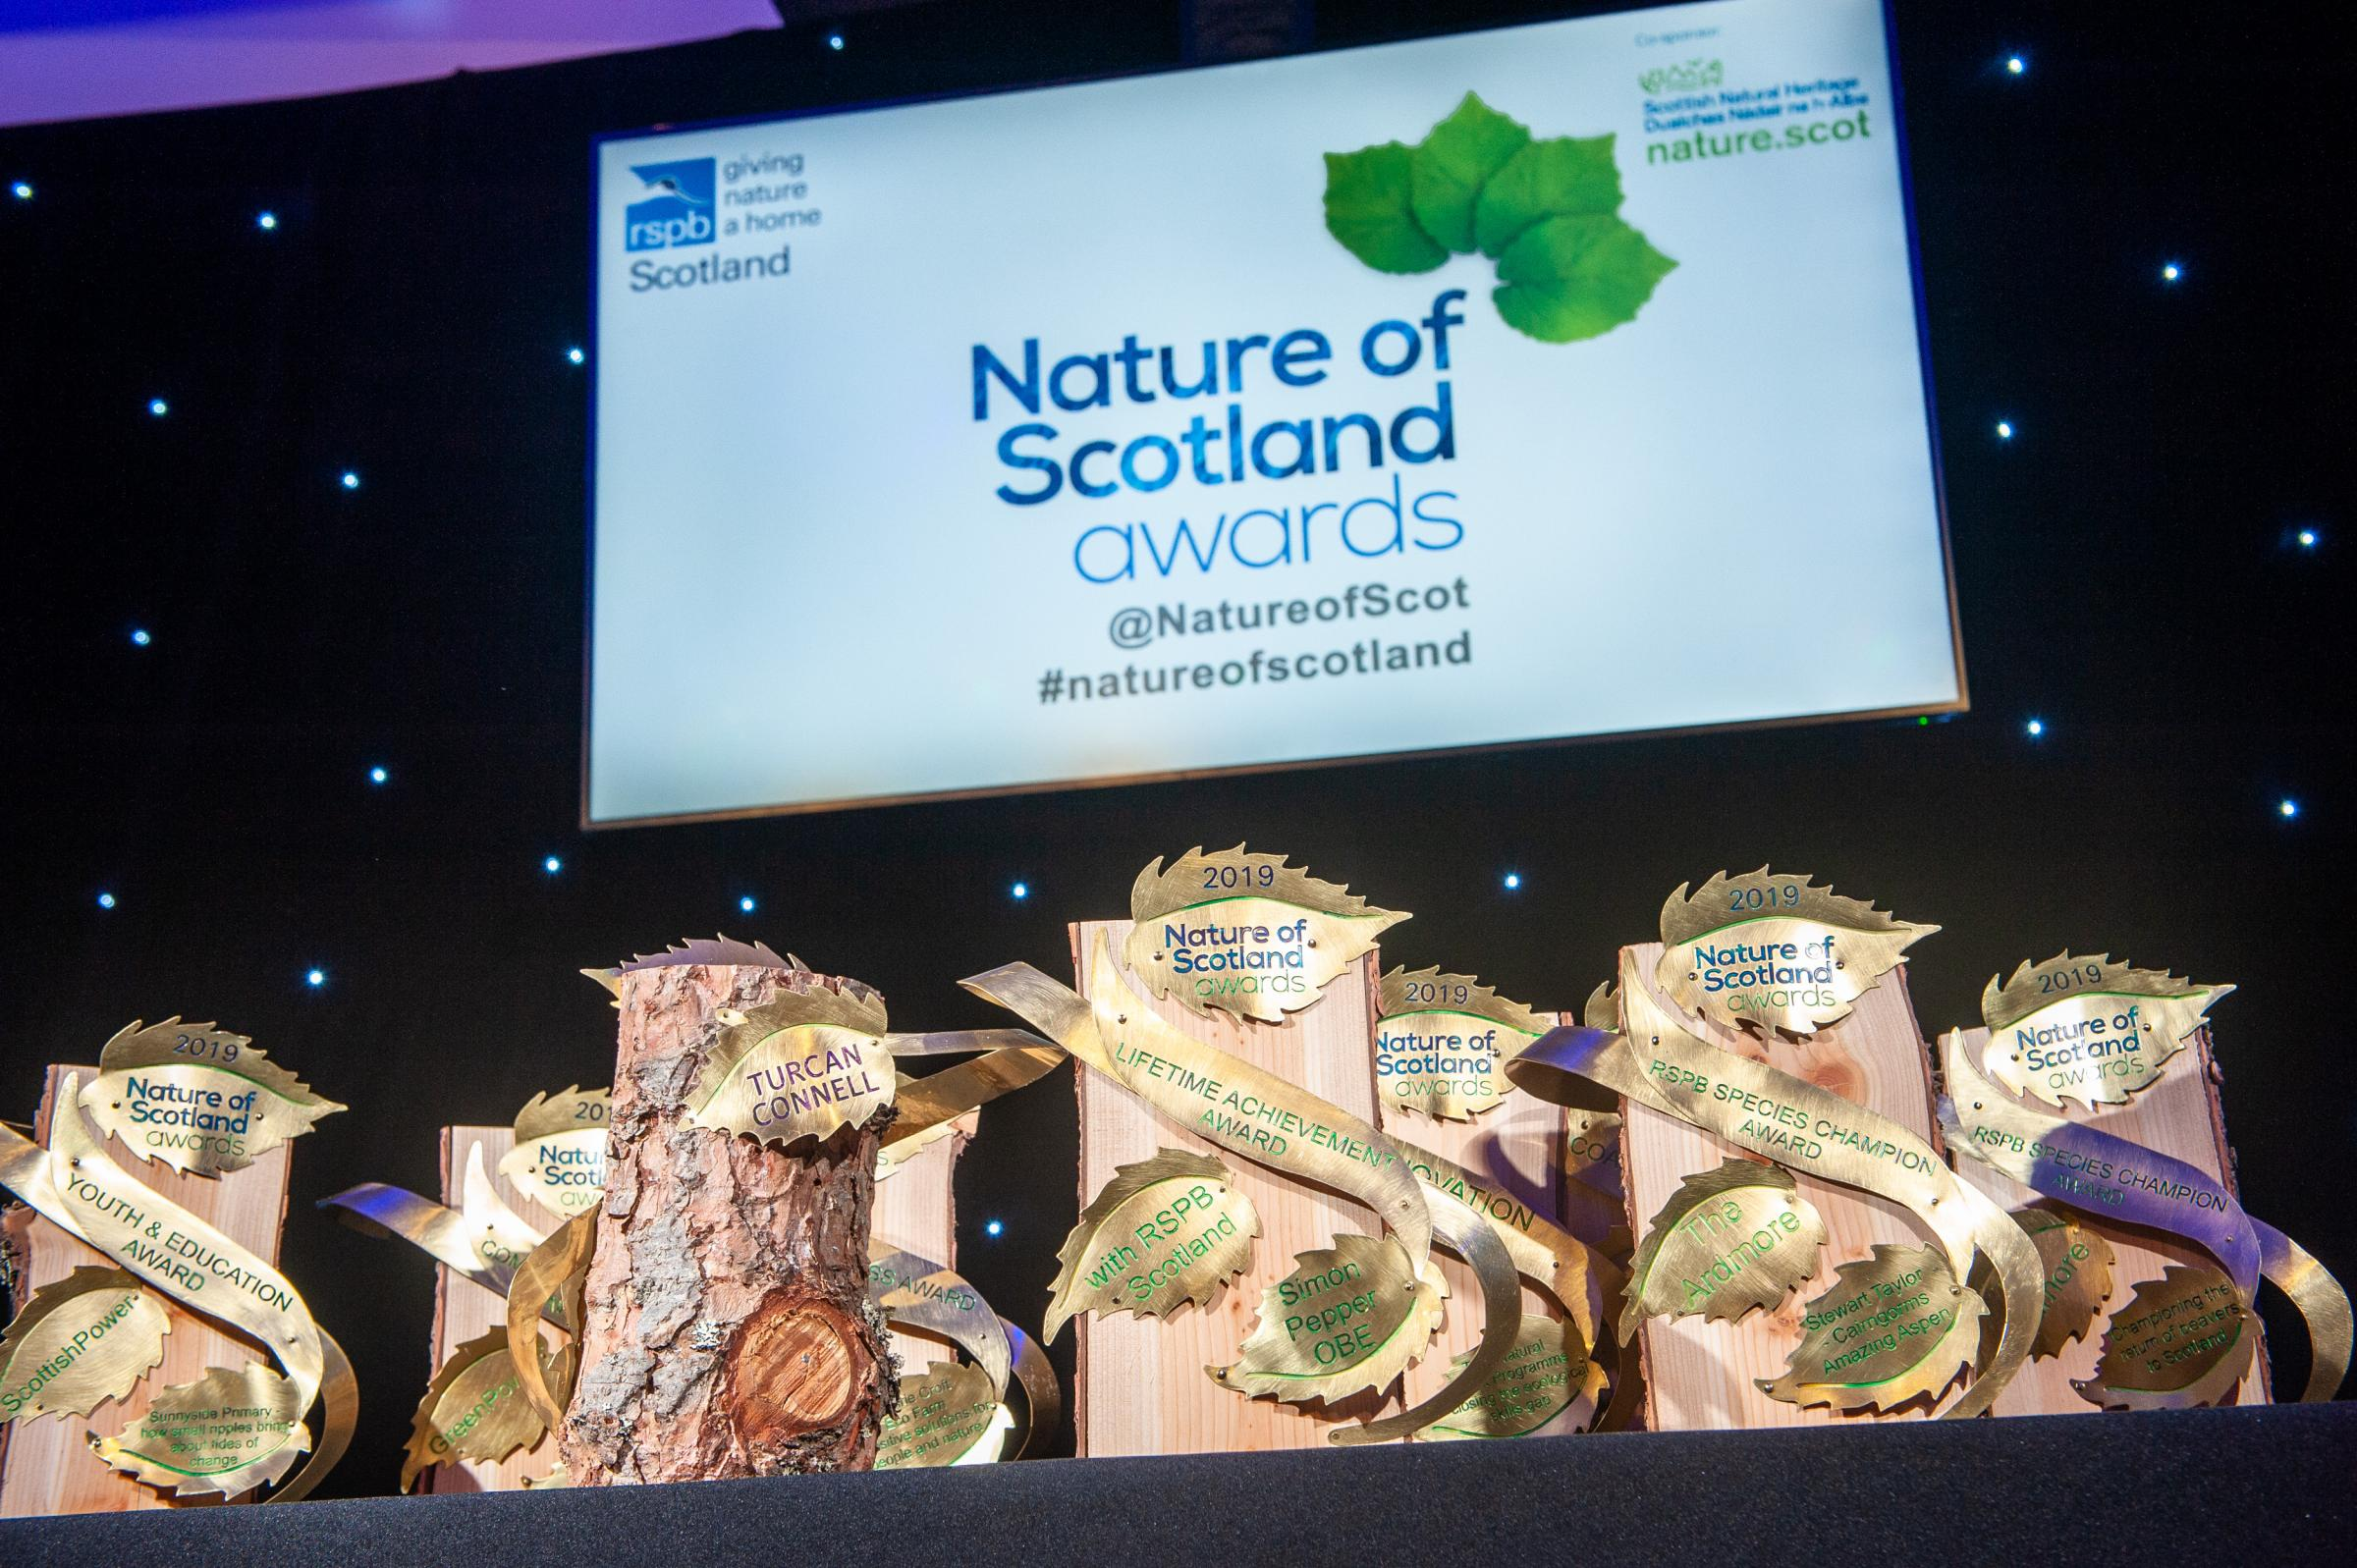 Scottish nature Awards celebrate work to save butterflies, birds and trees